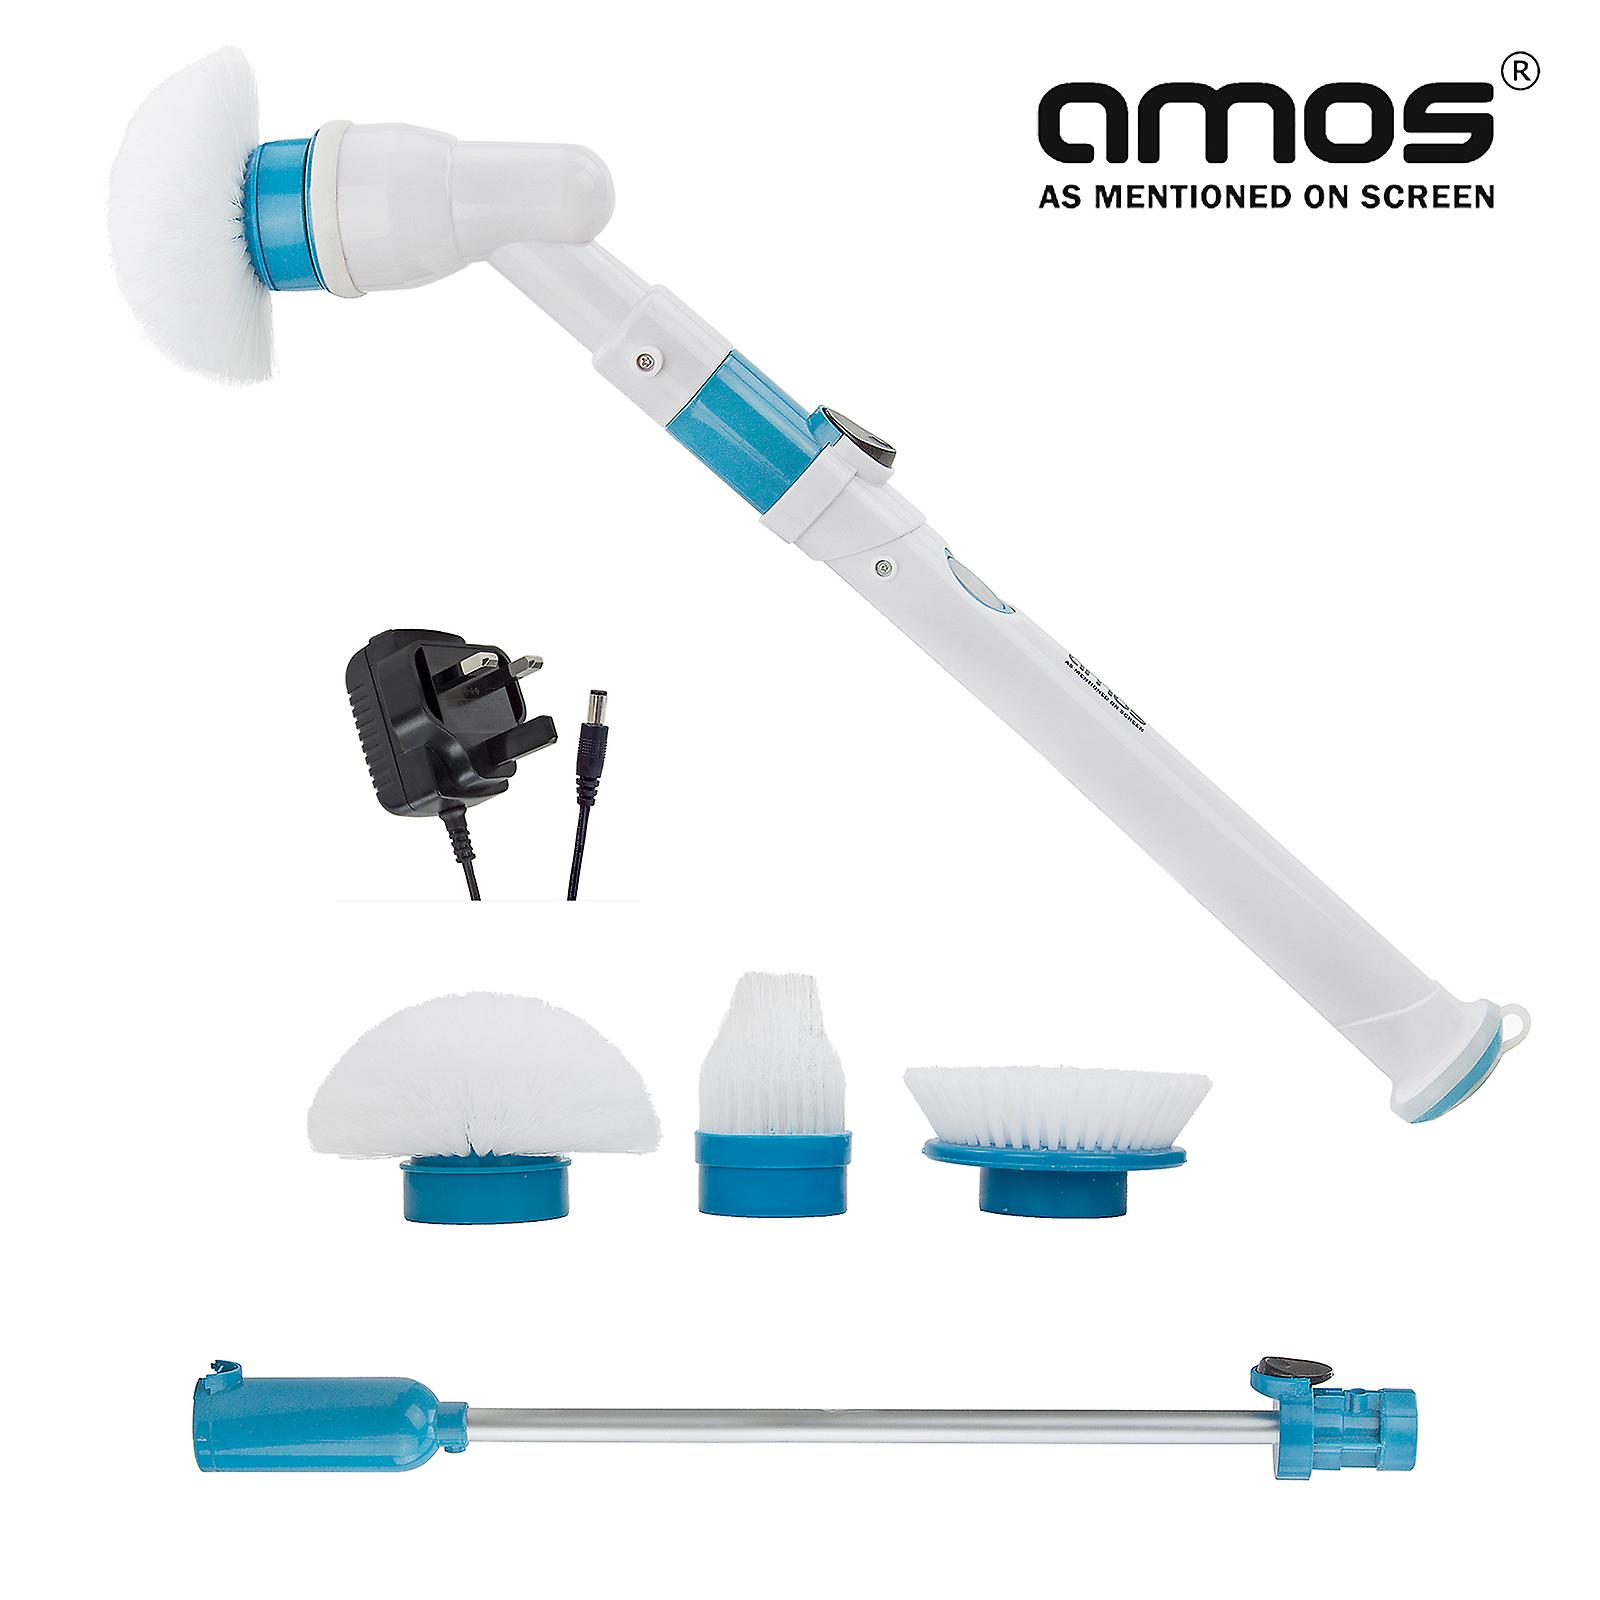 AMOS Super Scrubber Spin Brush